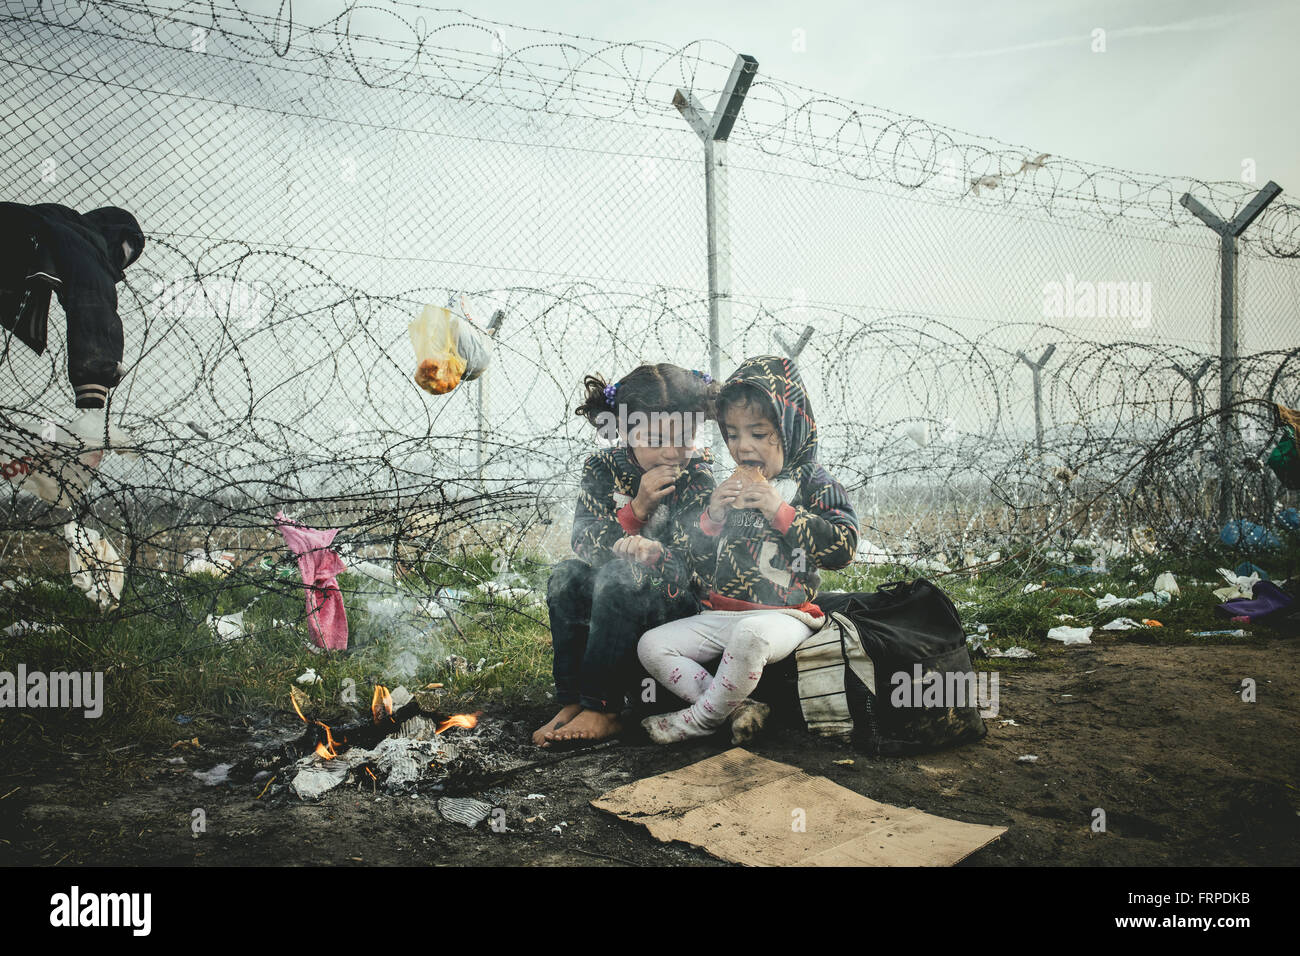 Idomeni refugee camp on the Greece Macedonia border, two little girls warm themselves at a campfire, Idomeni, Central - Stock Image